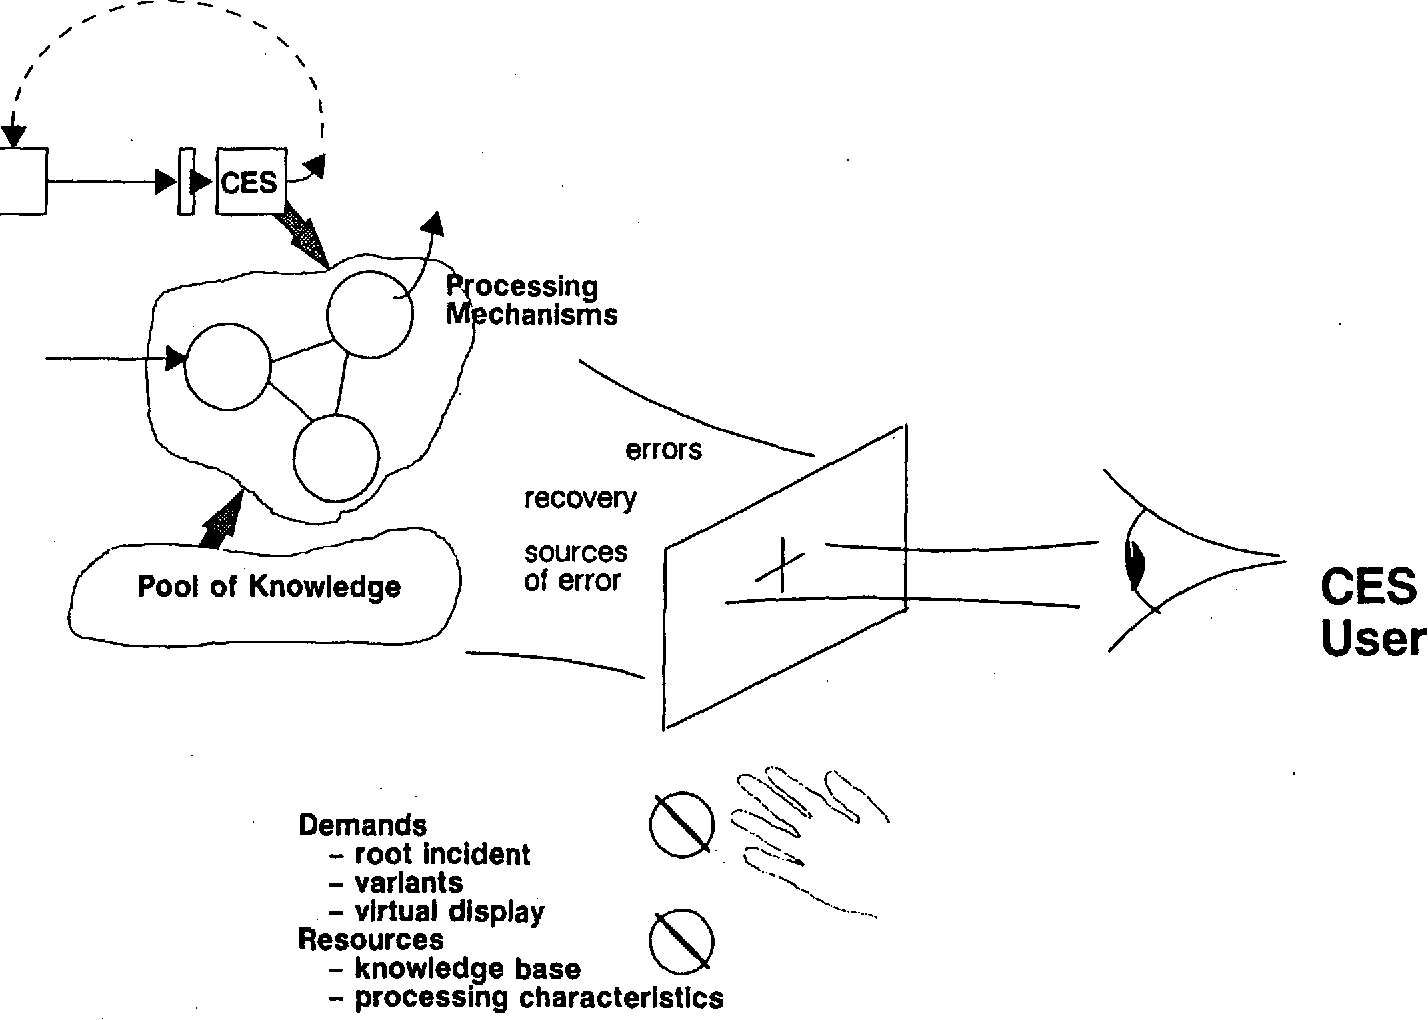 Figure 2-3 from Cognitive environment simulation: An